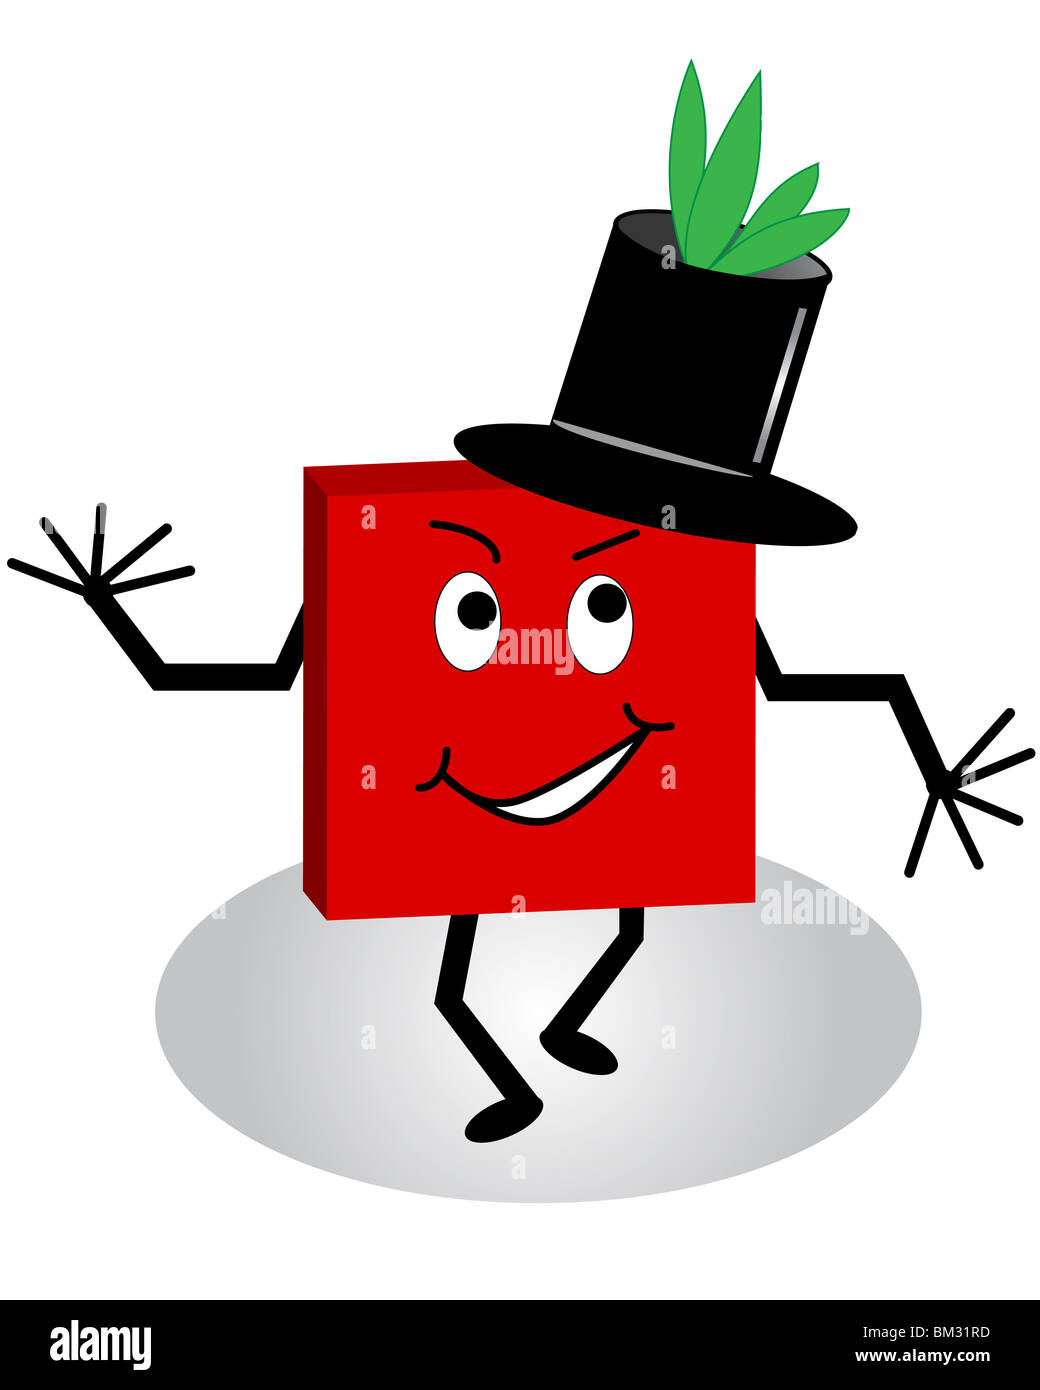 2b14643c2e8 A comical cartoon character with leaves growing out of his top hat - Stock  Image